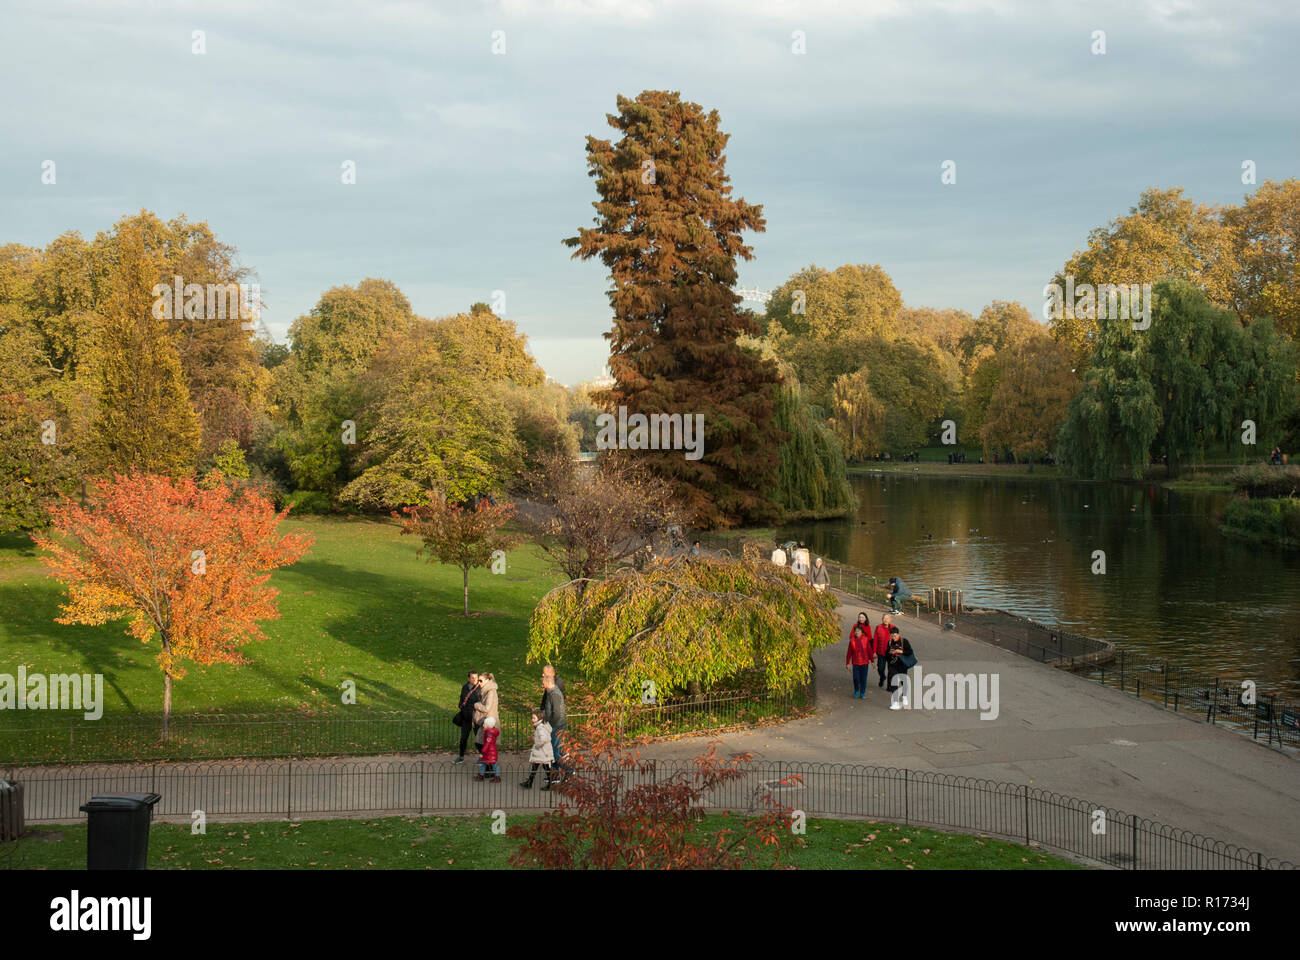 Historic St James's Park in the afternoon sunshine with autumnal colours. People walking in the distance by the lake. Stock Photo